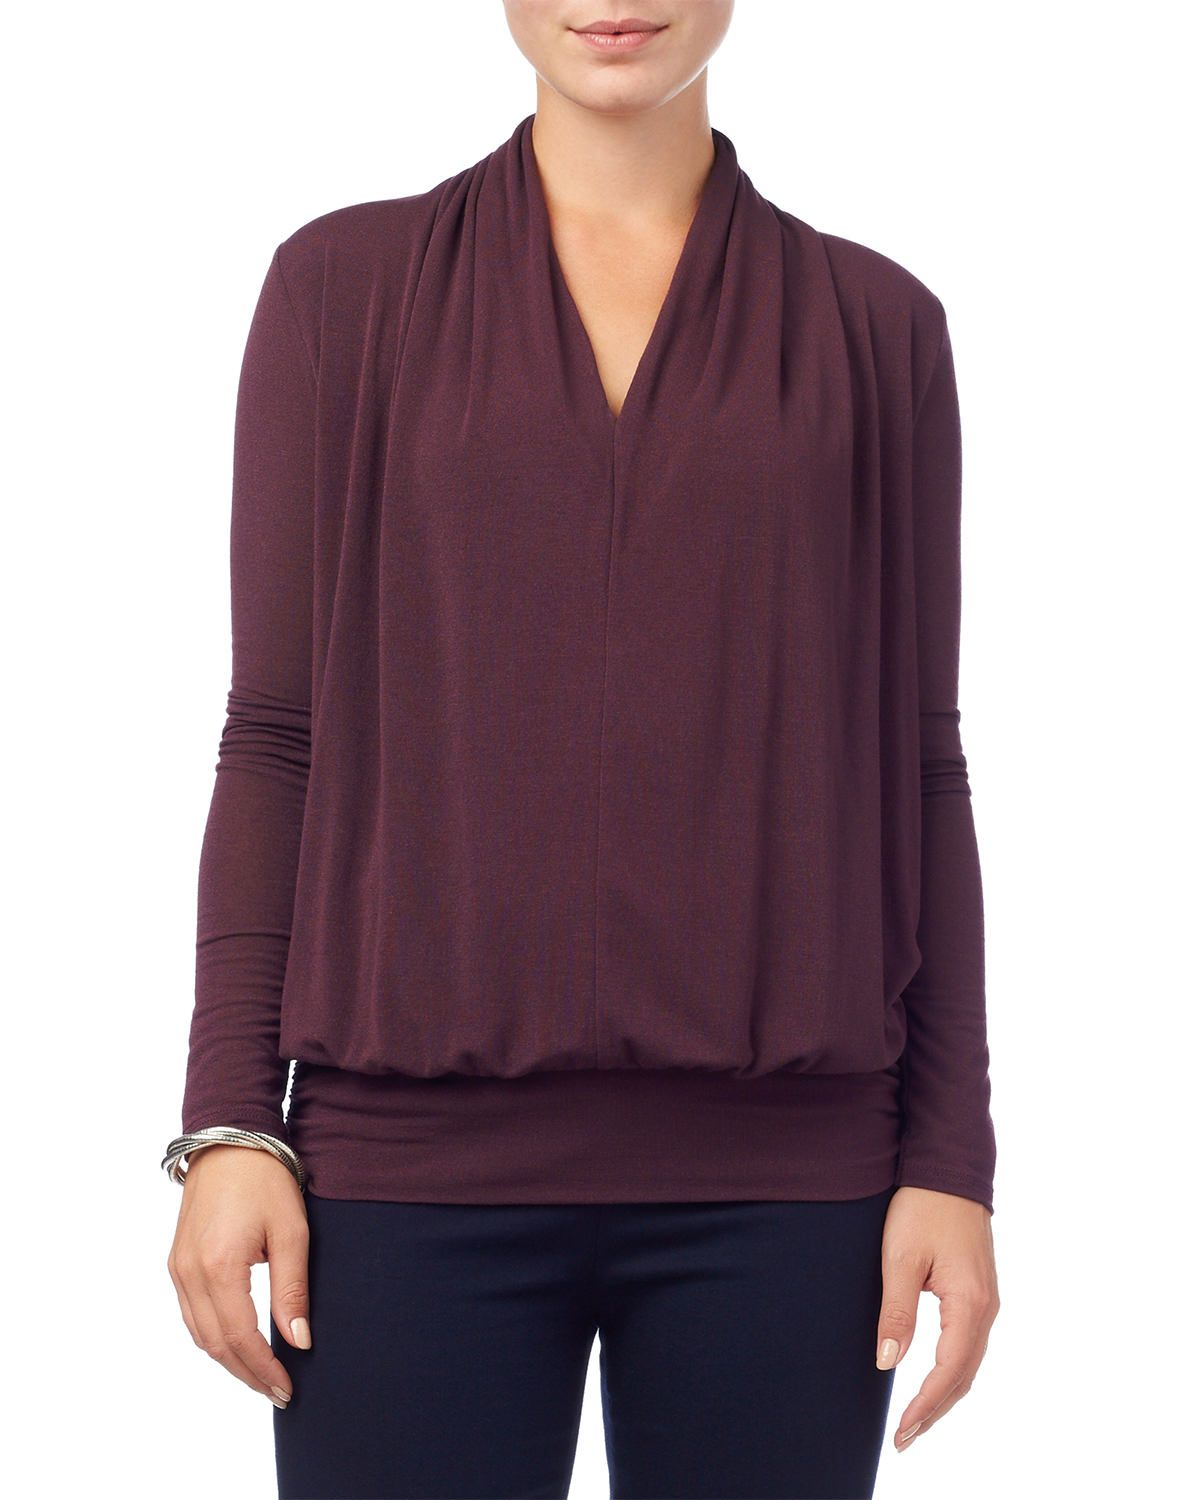 All New Arrivals   Purple Gwyneth Top   Phase Eight   New In ...